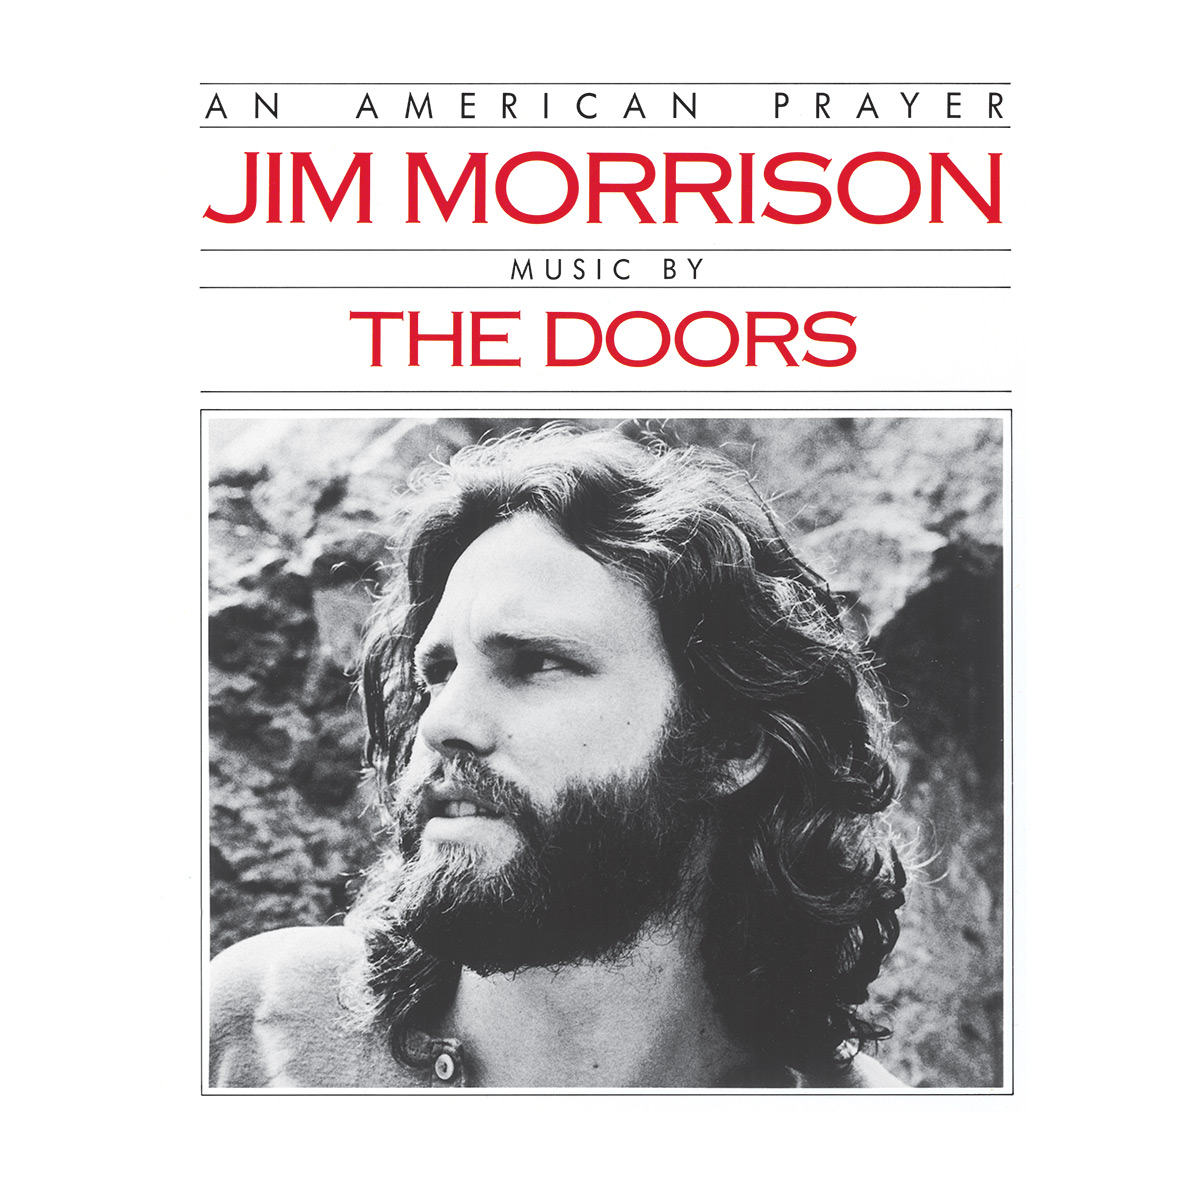 The Doors - An American Prayer - 1978